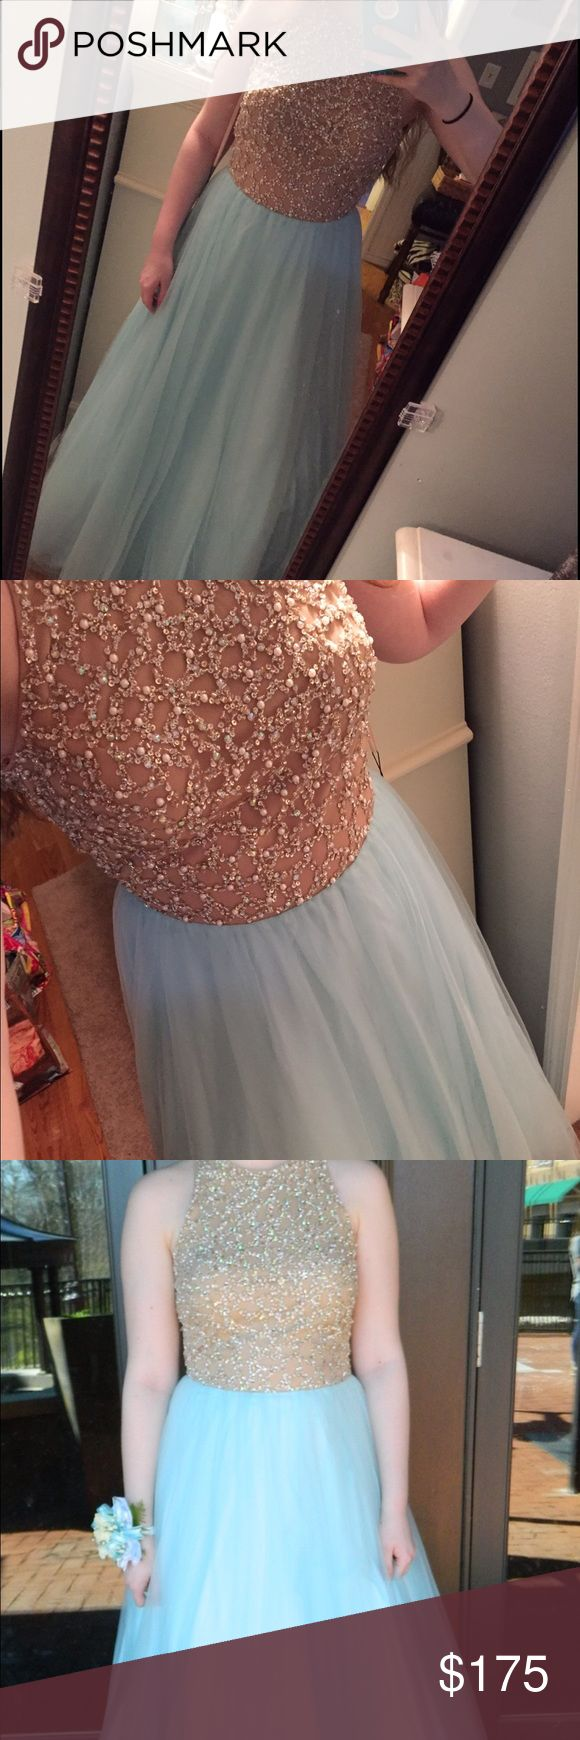 Prom Dress Prom dress in good condition. Wore it one time and had it altered to touch the ground when I was wearing 1.5 inch heals and I am 5 foot 7 inches. von maur Dresses Prom